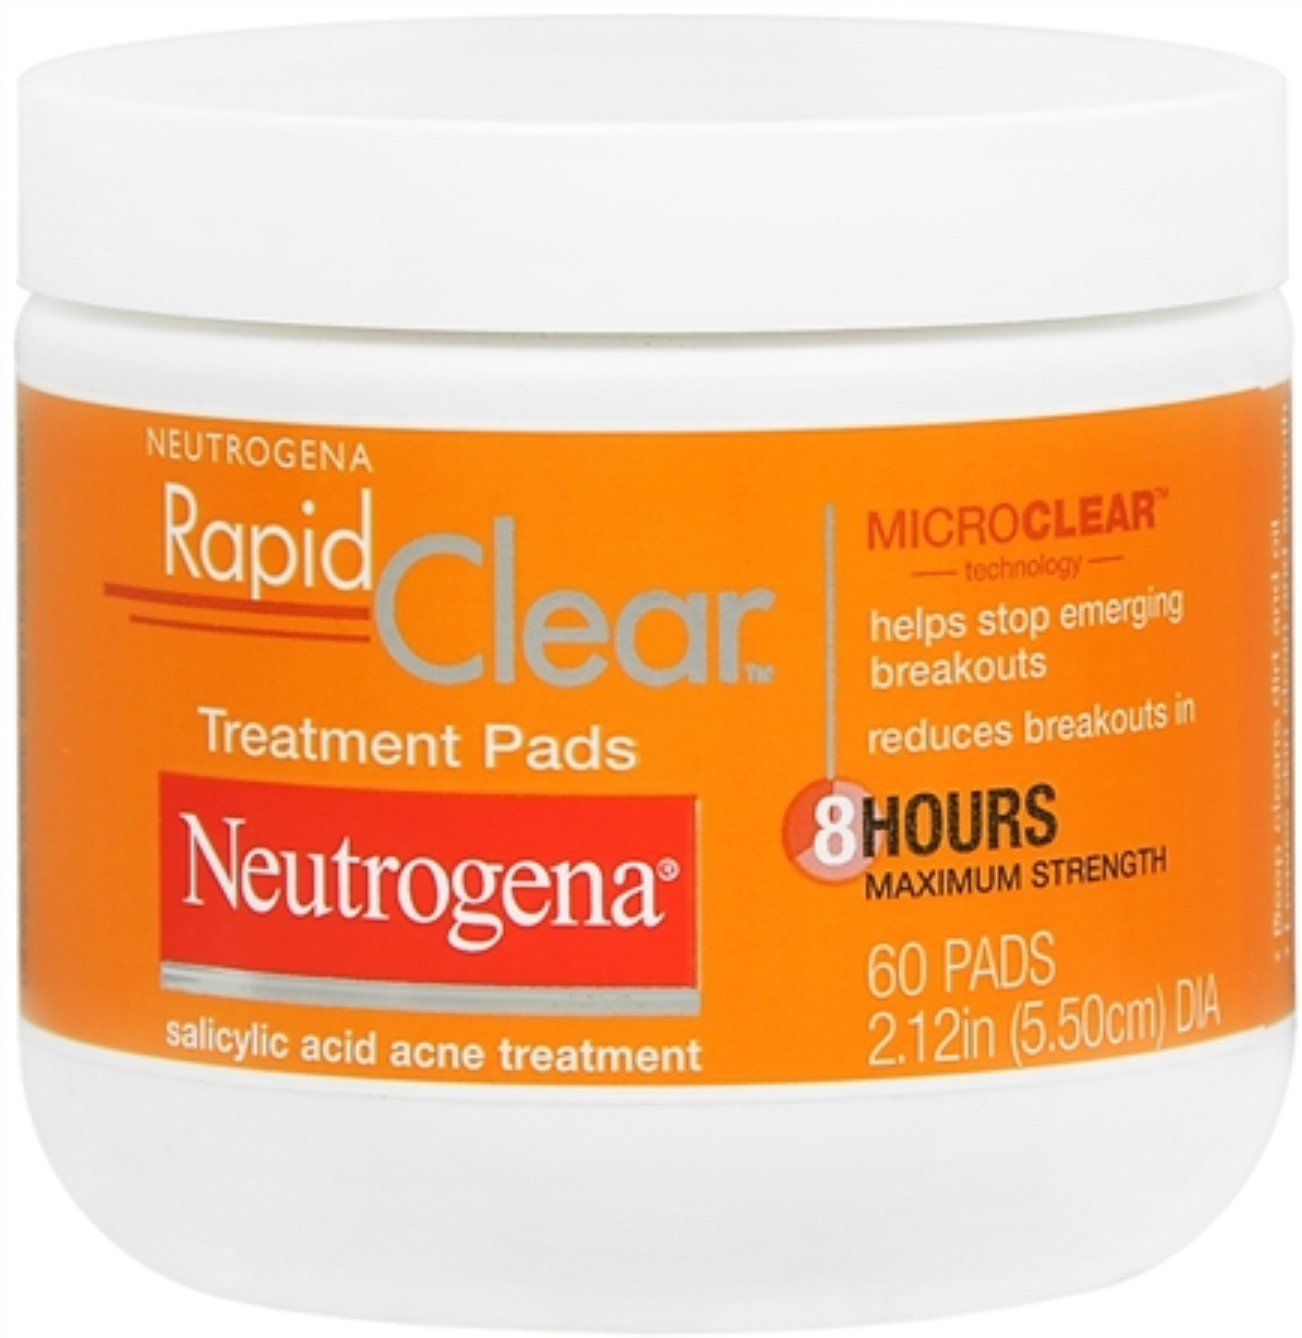 Neutrogena Rapid Clear Treatment Pads 60 Each (Pack of 6)